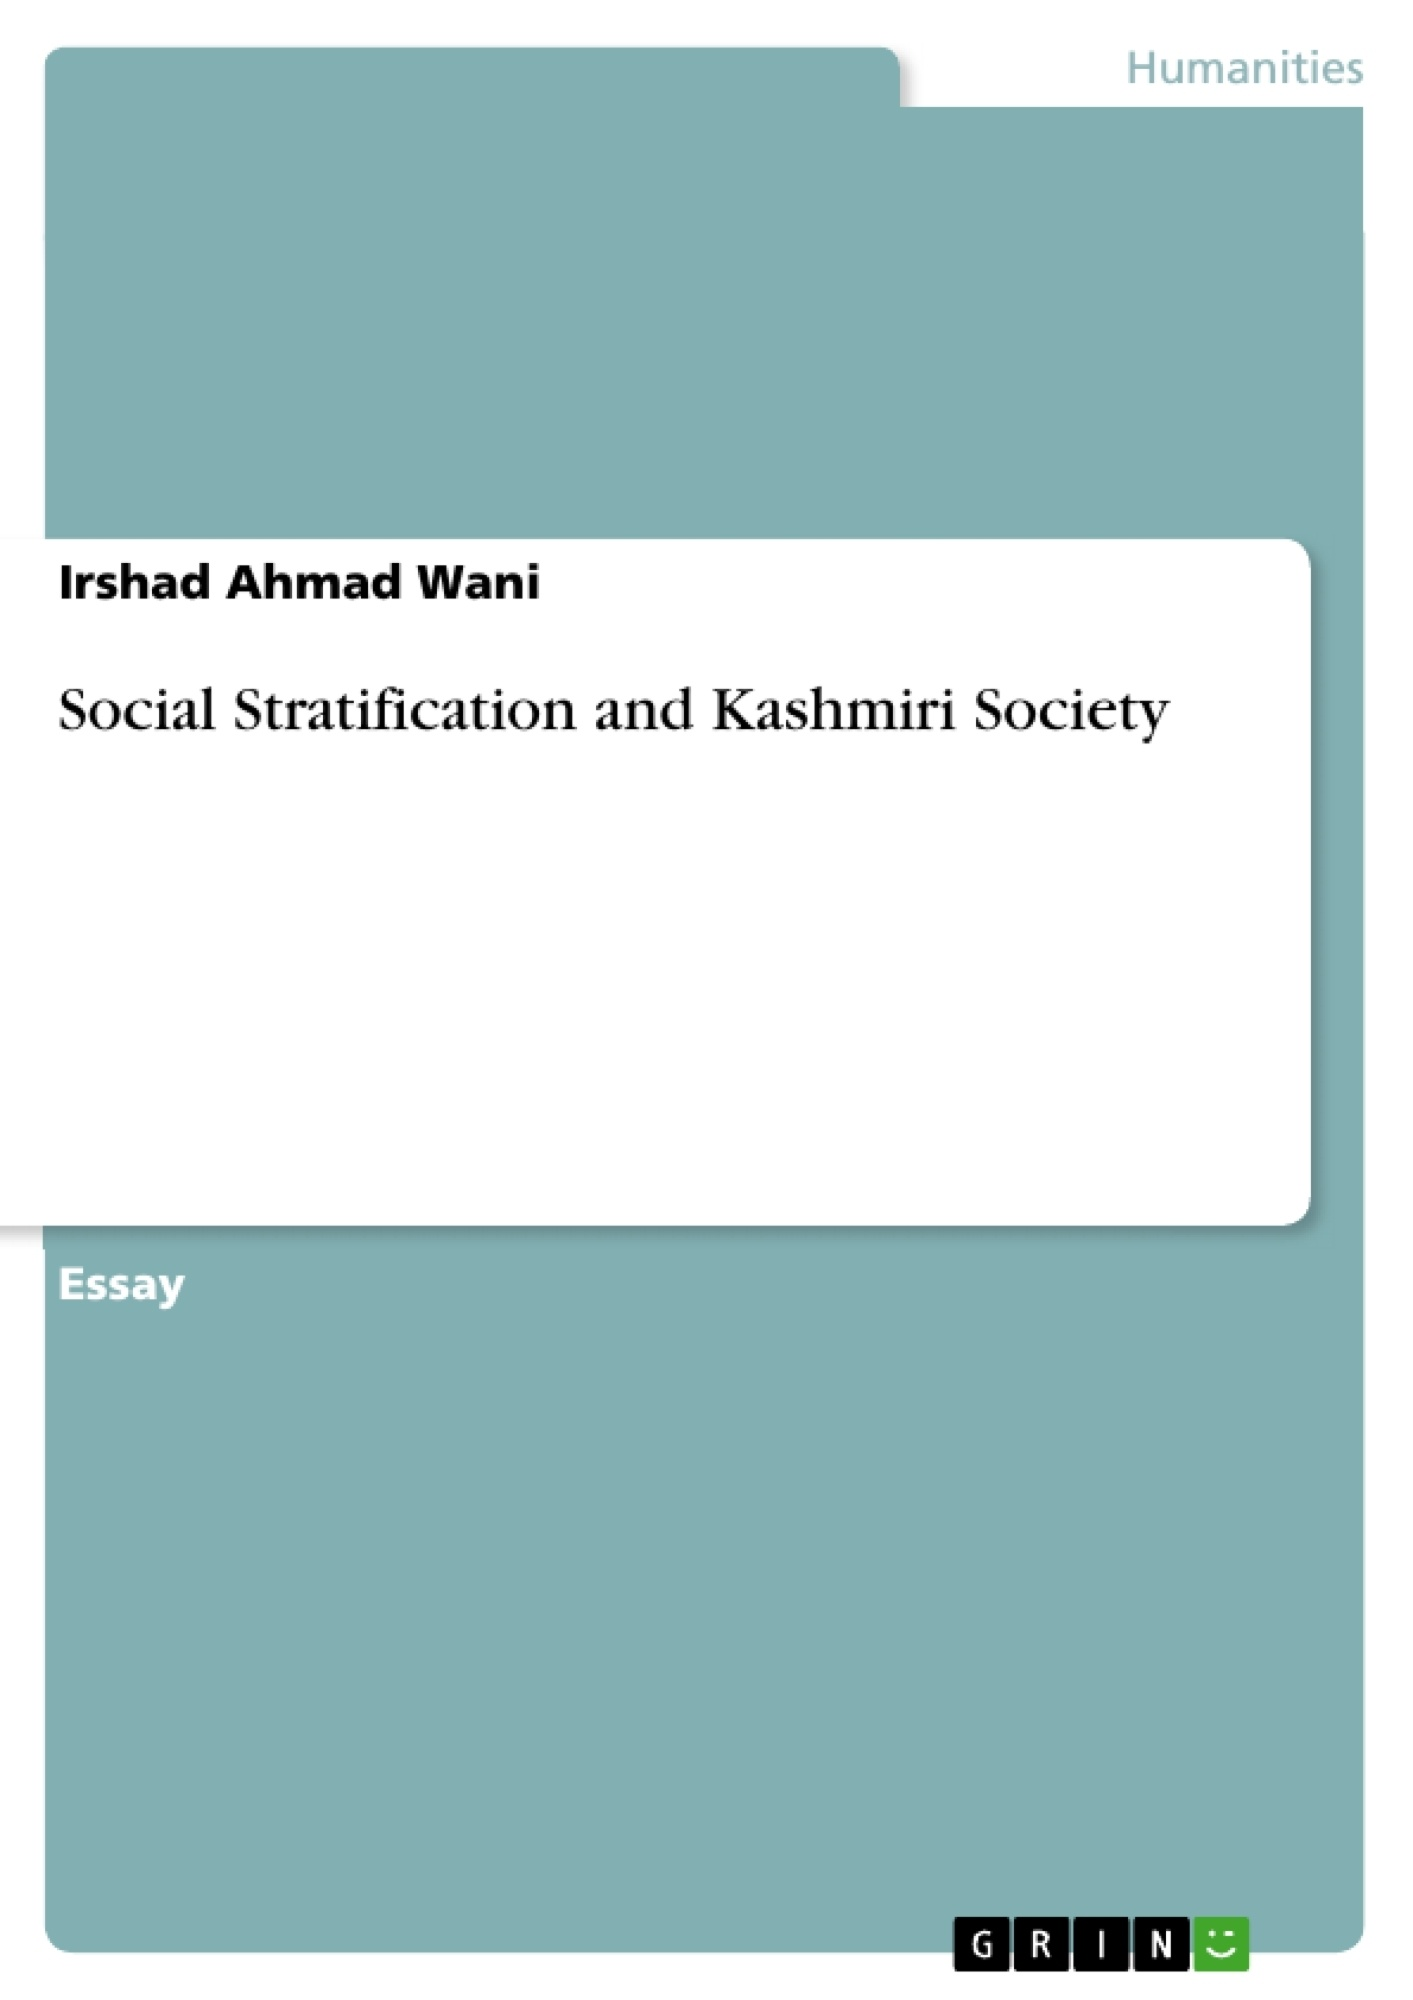 Social Stratification And Kashmiri Society  Publish Your Masters  Upload Your Own Papers Earn Money And Win An Iphone X Descriptive Essay Thesis also Buy Persuasive Speeches Online  Persuasive Essay Examples For High School